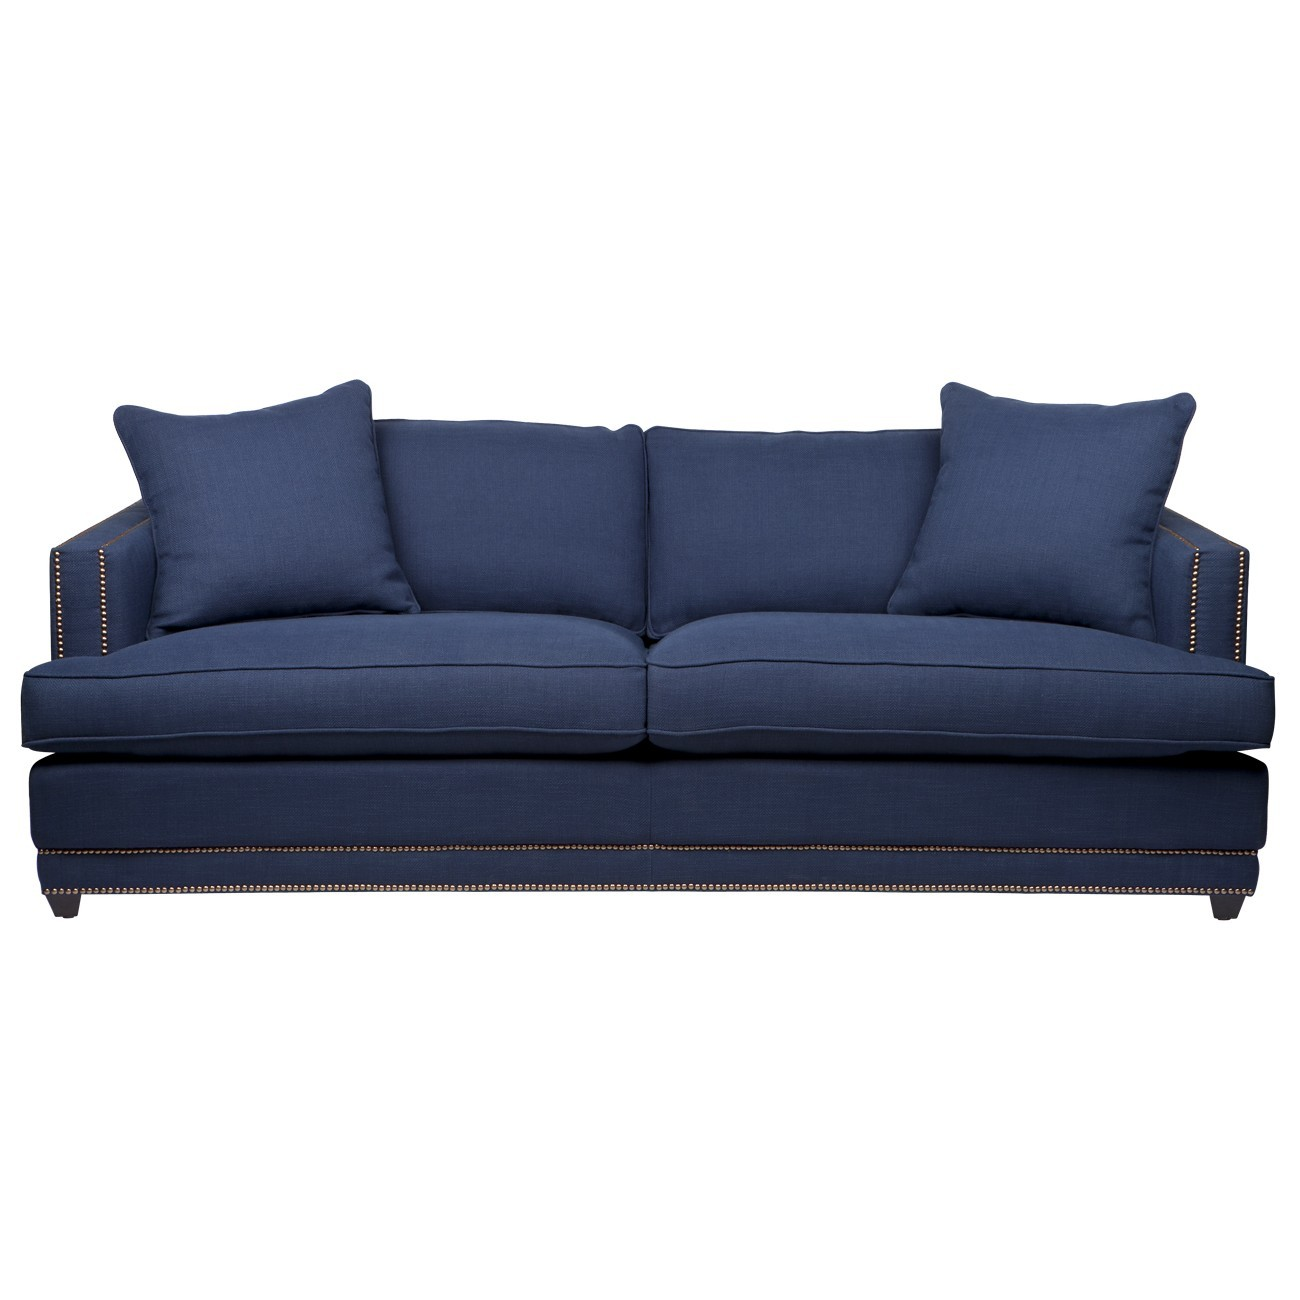 Darling 3 Seater Fabric Sofa, Navy